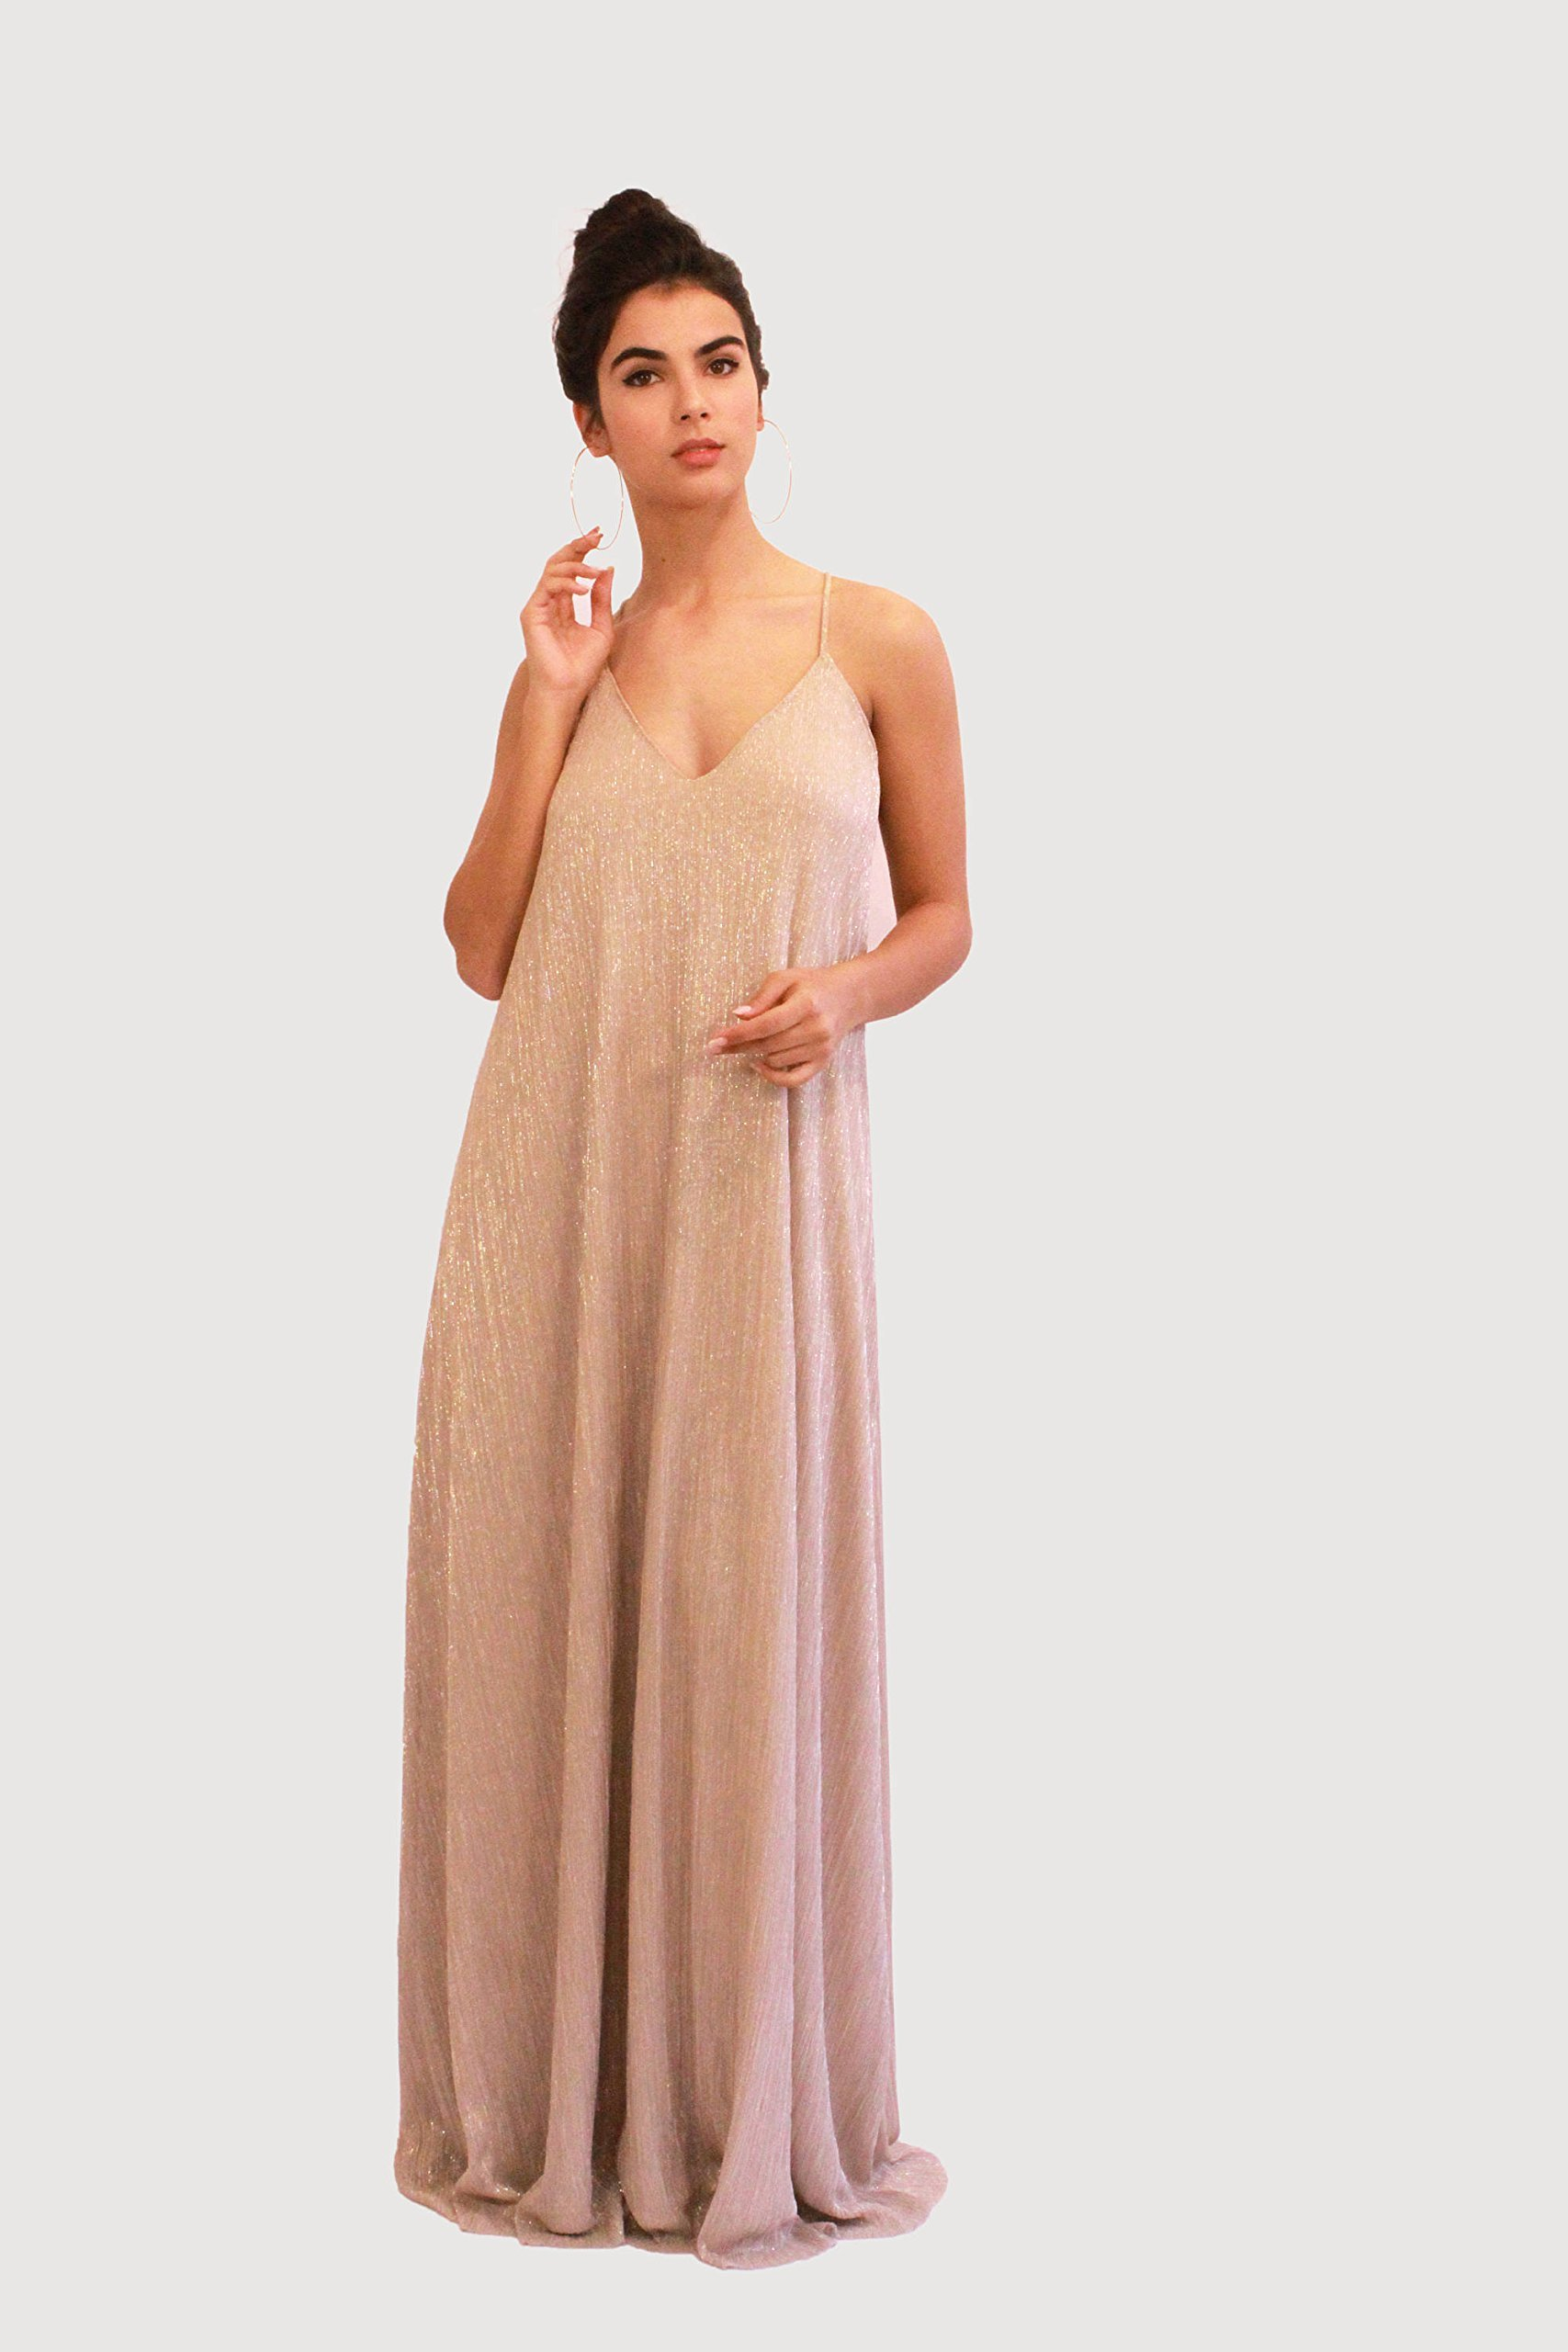 Women's Gold Dress, Bridesmaid, Prom and Evening Dress, Maxi Long Dress for Wedding, Elegant Pleated Gown